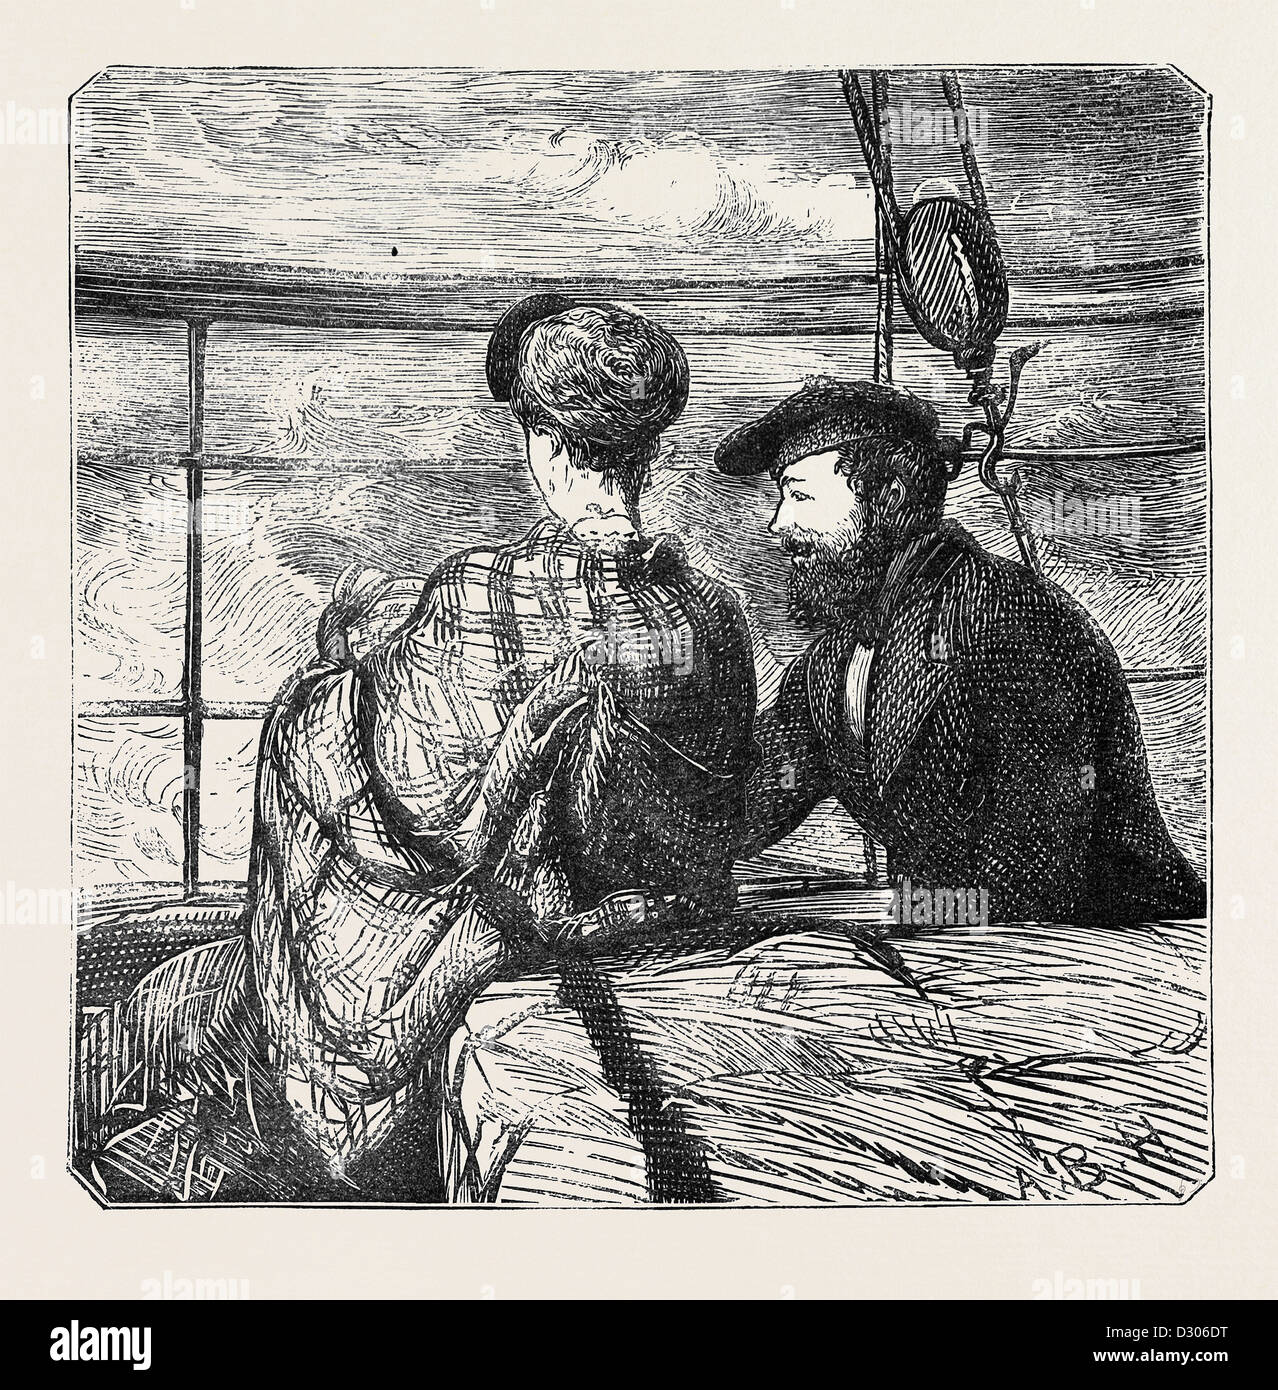 ON THE ATLANTIC STEAMER: MOONSHINE, 1870 - Stock Image